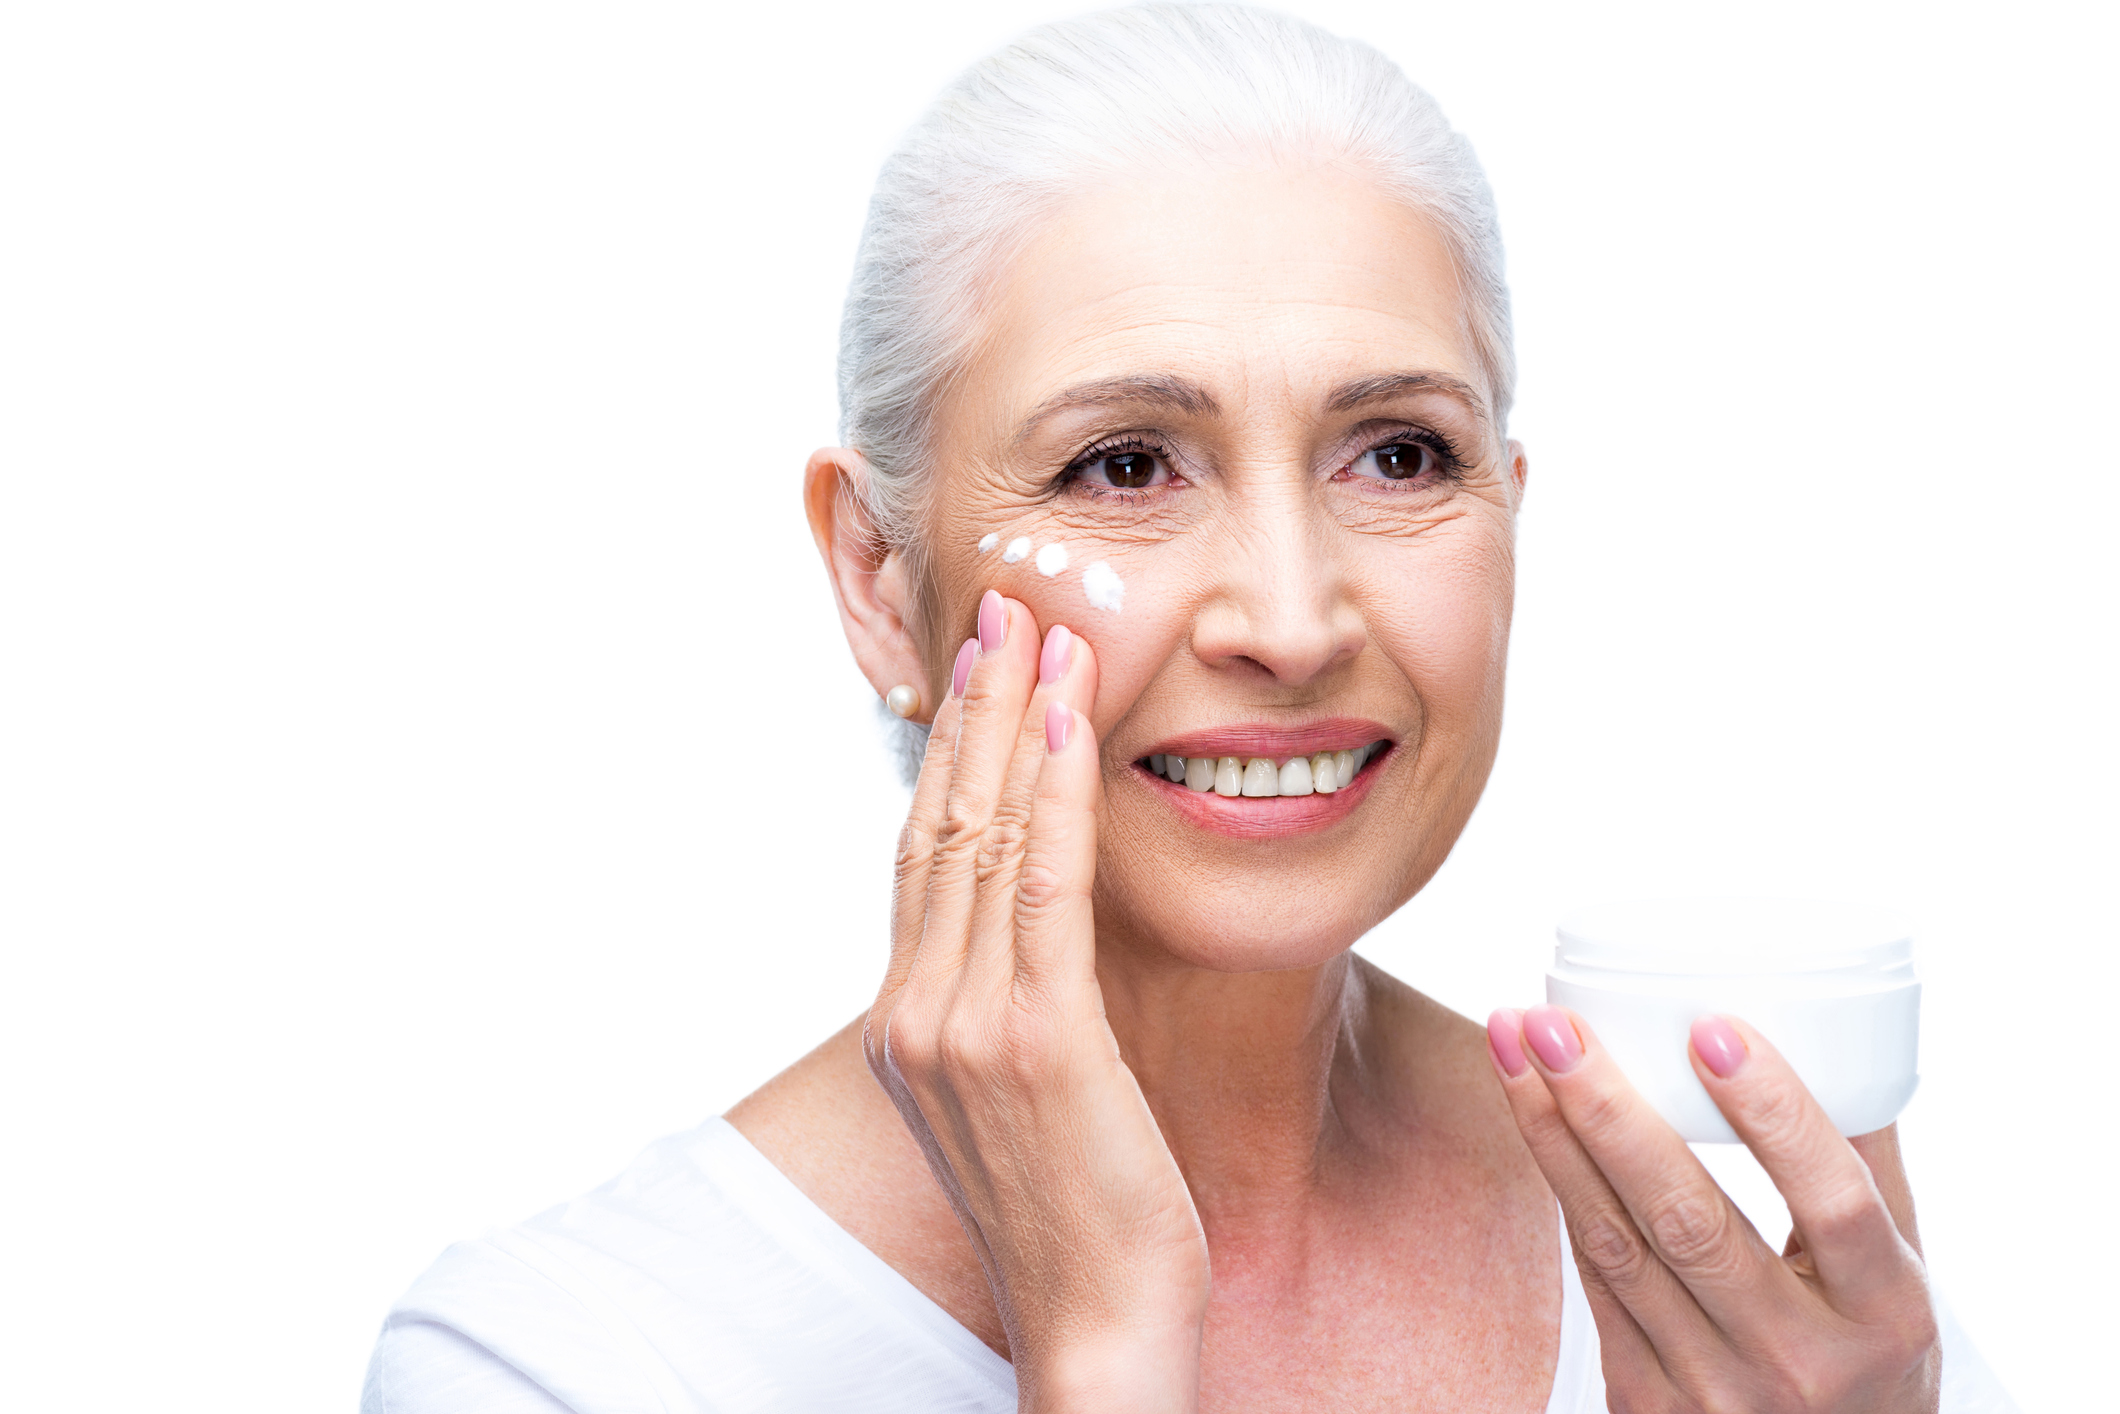 Anti Aging Creams and Massages Don't Work